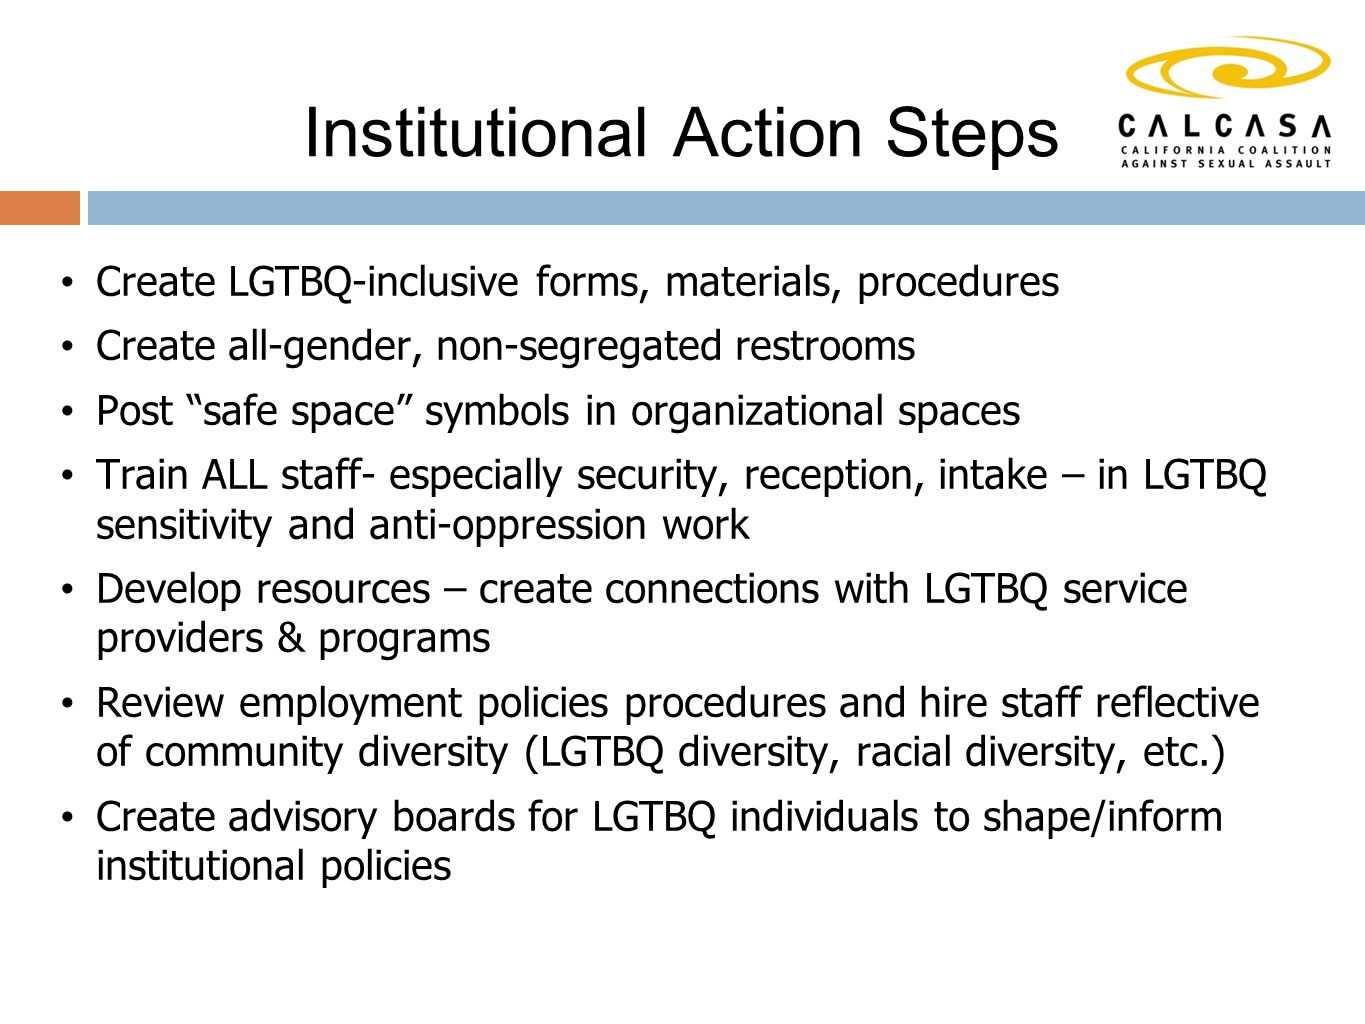 Create LGTBQ-inclusive forms, materials, procedures Create all-gender, non-segregated restrooms Post safe space symbols in organizational spaces Train ALL staff- especially security, reception, intake – in LGTBQ sensitivity and anti-oppression work Develop resources – create connections with LGTBQ service providers & programs Review employment policies procedures and hire staff reflective of community diversity (LGTBQ diversity, racial diversity, etc.) Create advisory boards for LGTBQ individuals to shape/inform institutional policies Institutional Action Steps